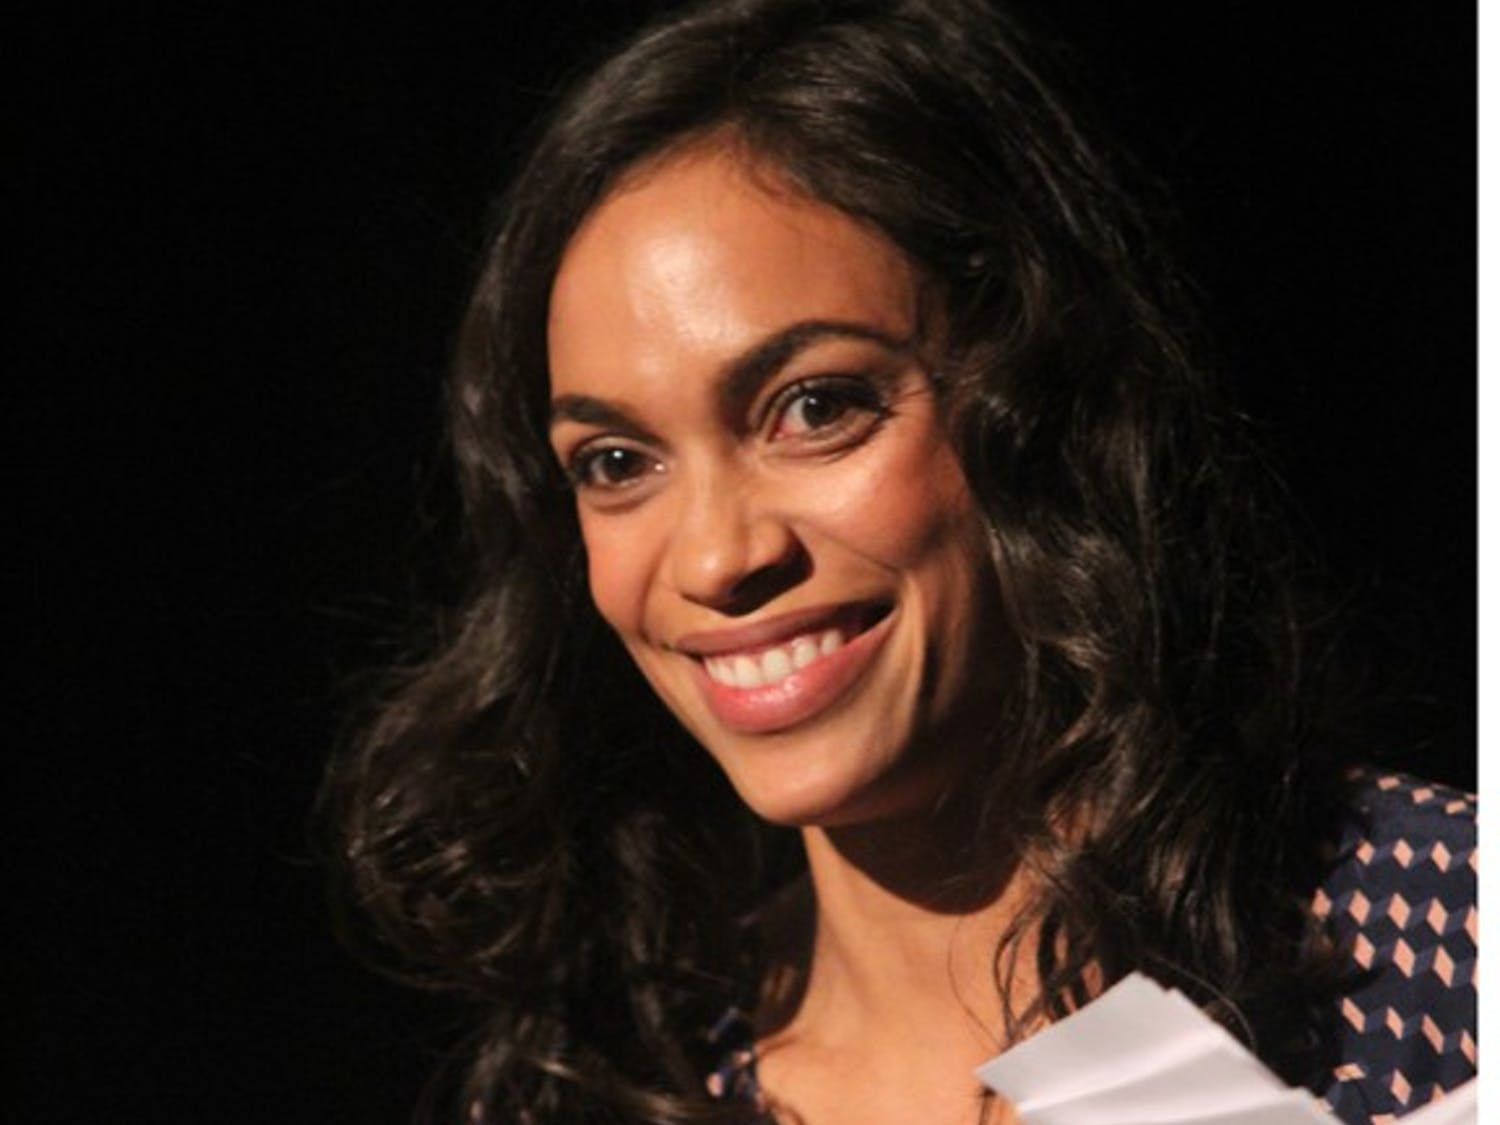 Rosario Dawson leads a panel discussion at the DNC on Tuesday.